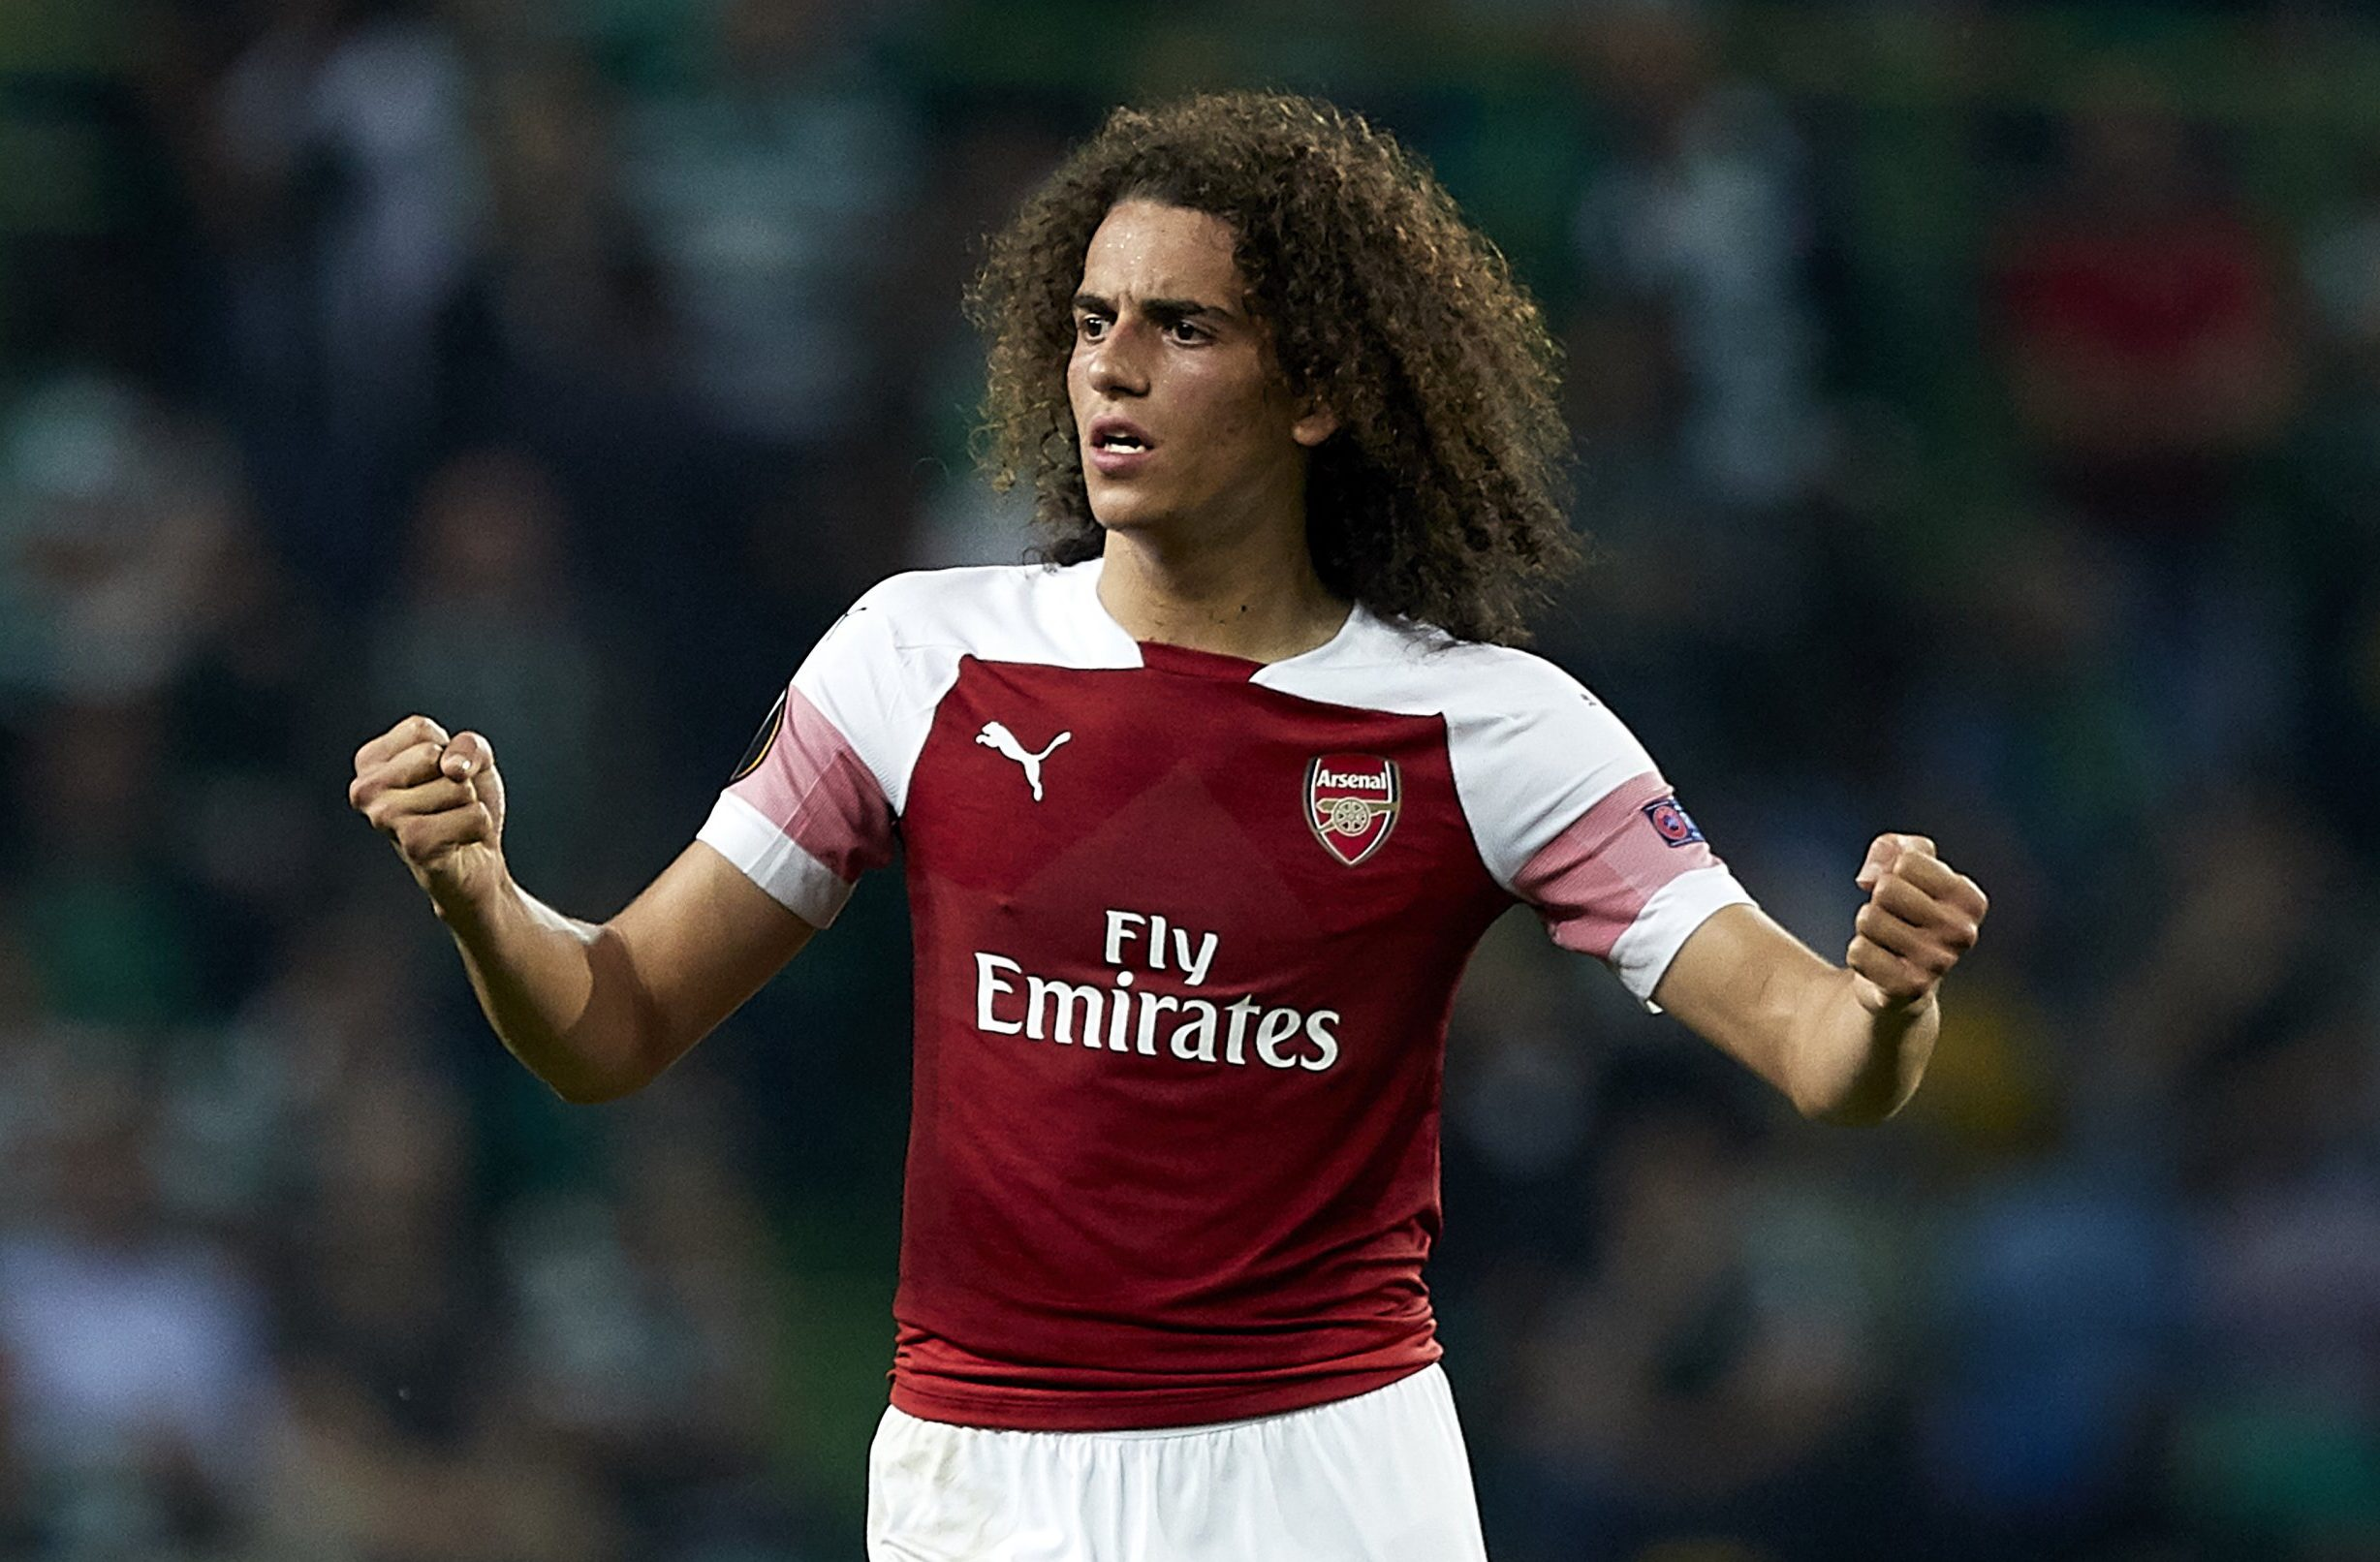 LISBON, PORTUGAL - OCTOBER 25: Matteo Guendouzi of Arsenal reacts during the UEFA Europa League Group E match between Sporting CP and Arsenal at Estadio Jose Alvalade on October 25, 2018 in Lisbon, Portugal. (Photo by Quality Sport Images/Getty Images)